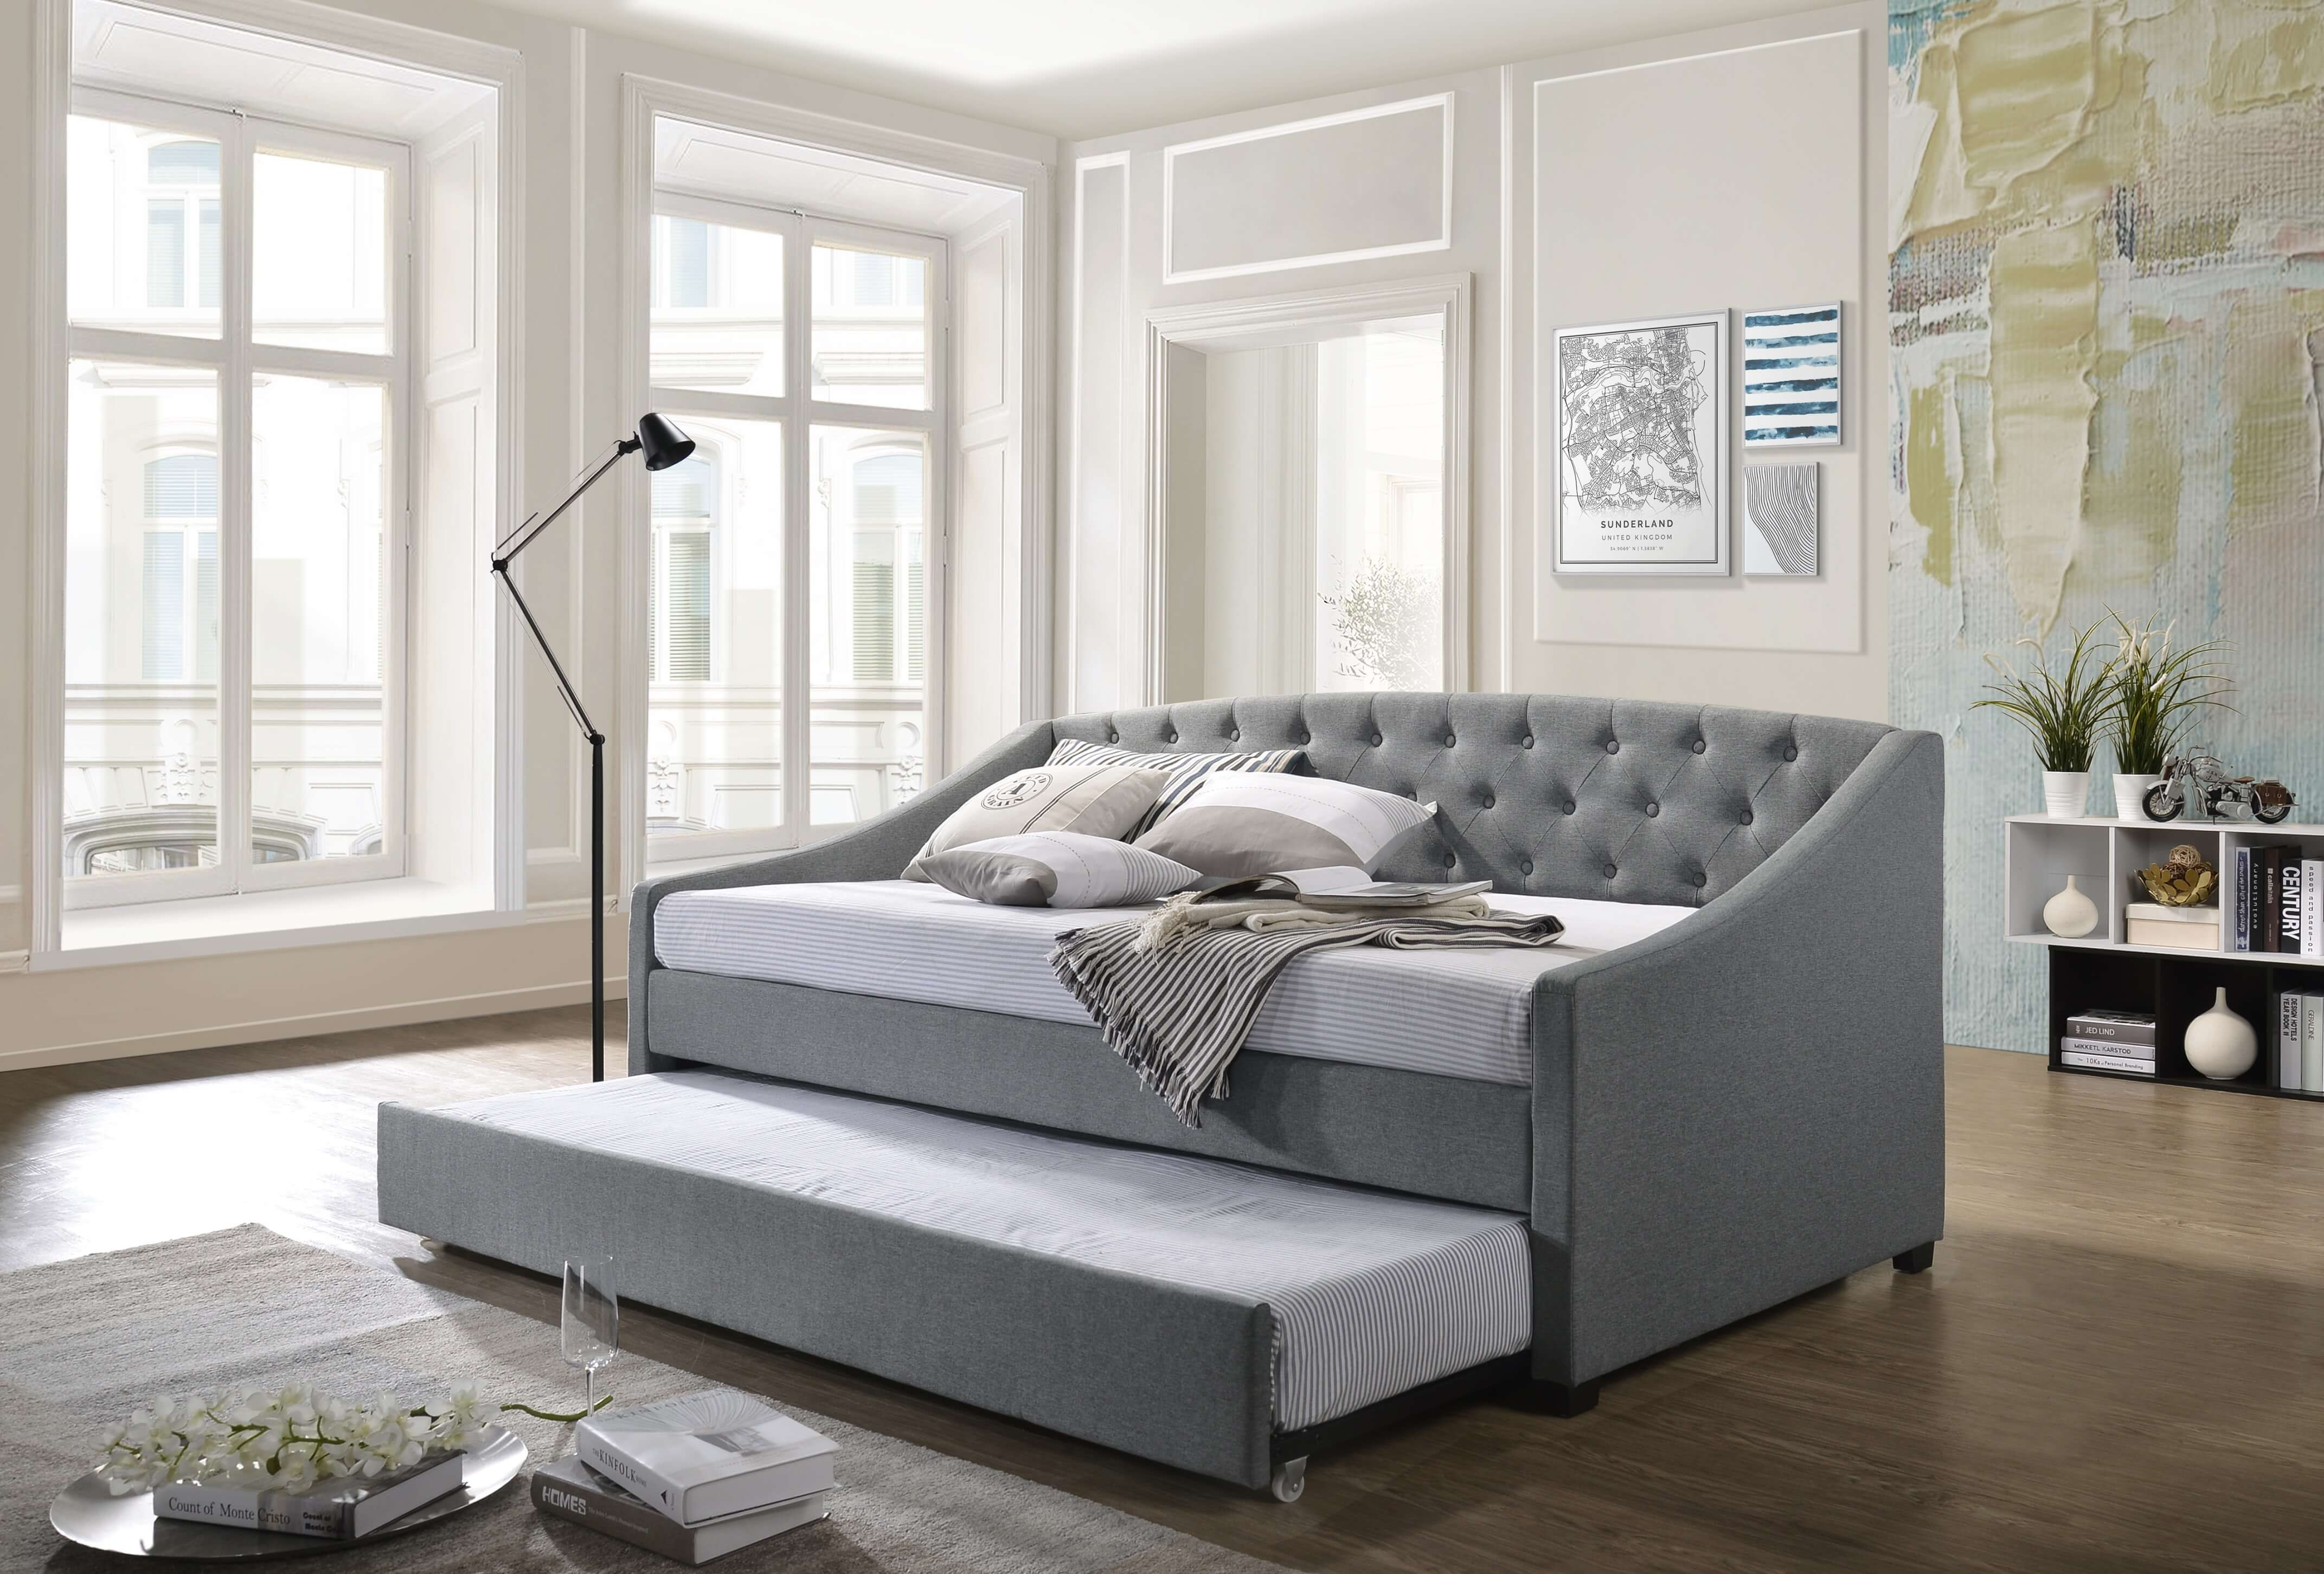 Details about OLSEN Daybed with Trundle Bed Frame Fabric Upholstery Sofa  Single Size Mattress